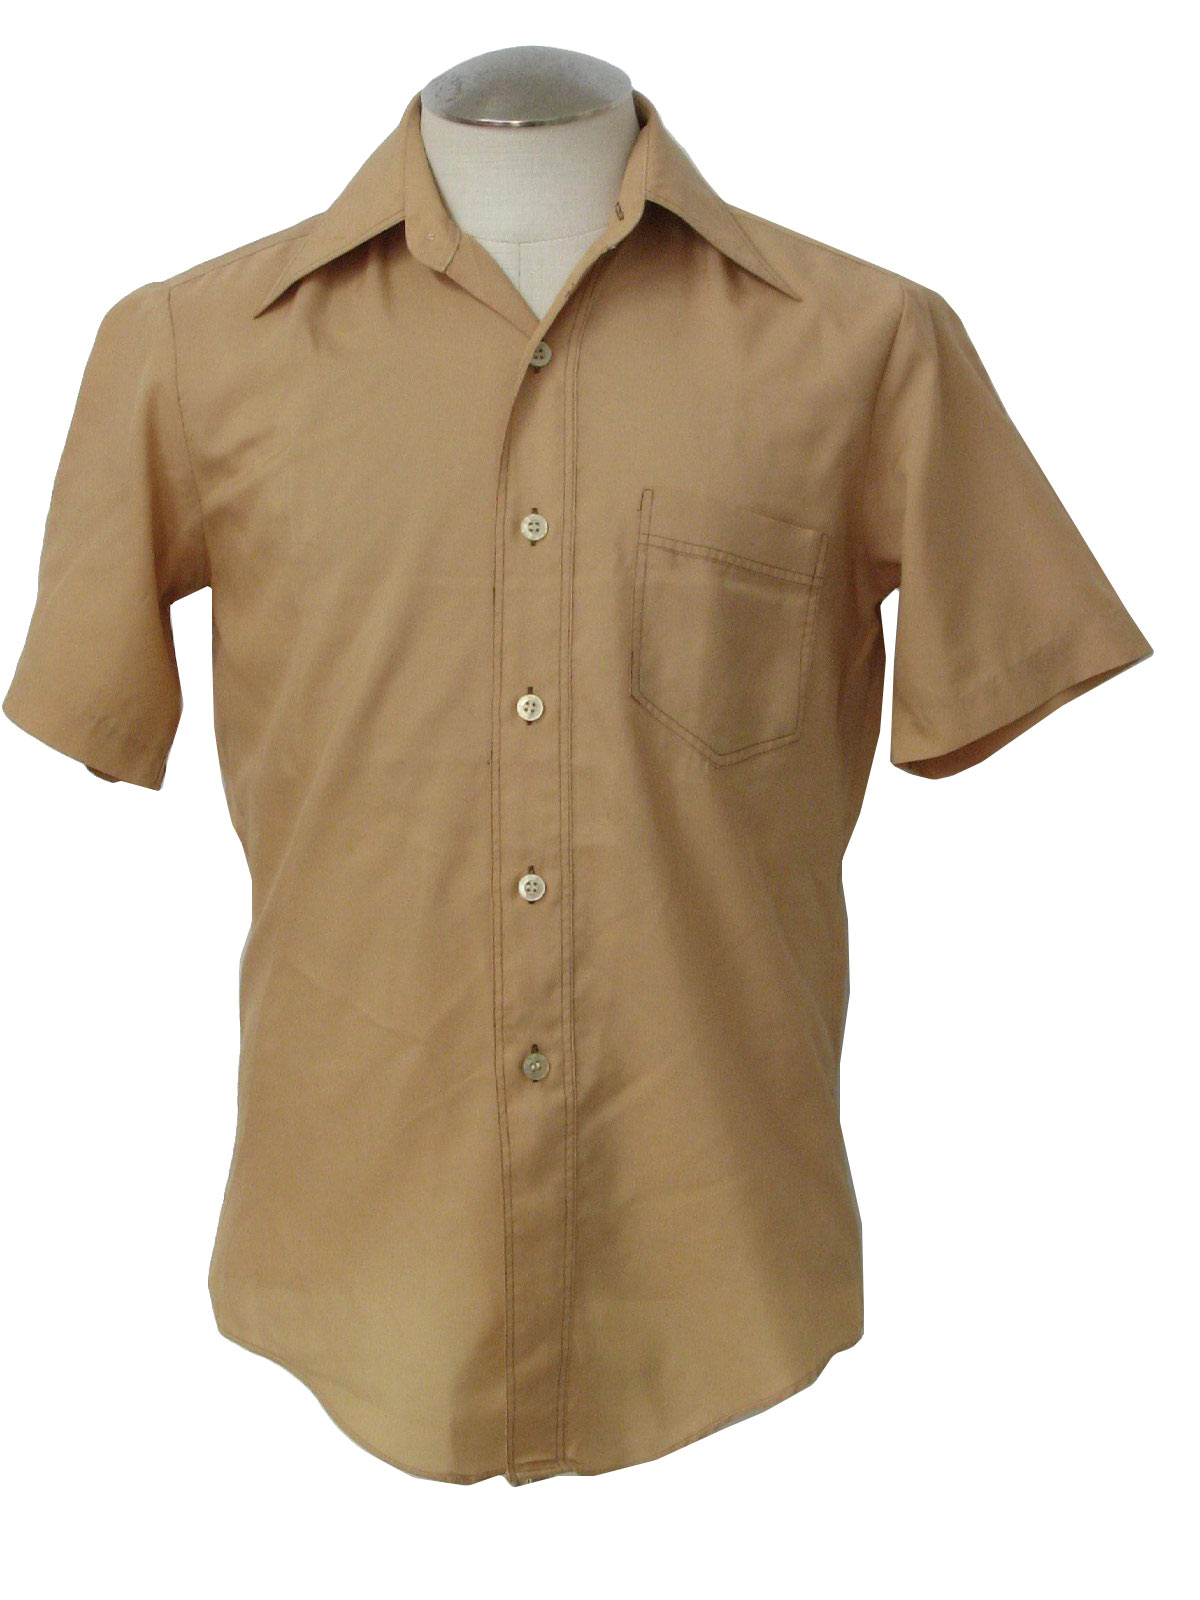 SHIRTS - Shirts Cellini Free Shipping Wide Range Of Deals Largest Supplier For Sale YtQz6